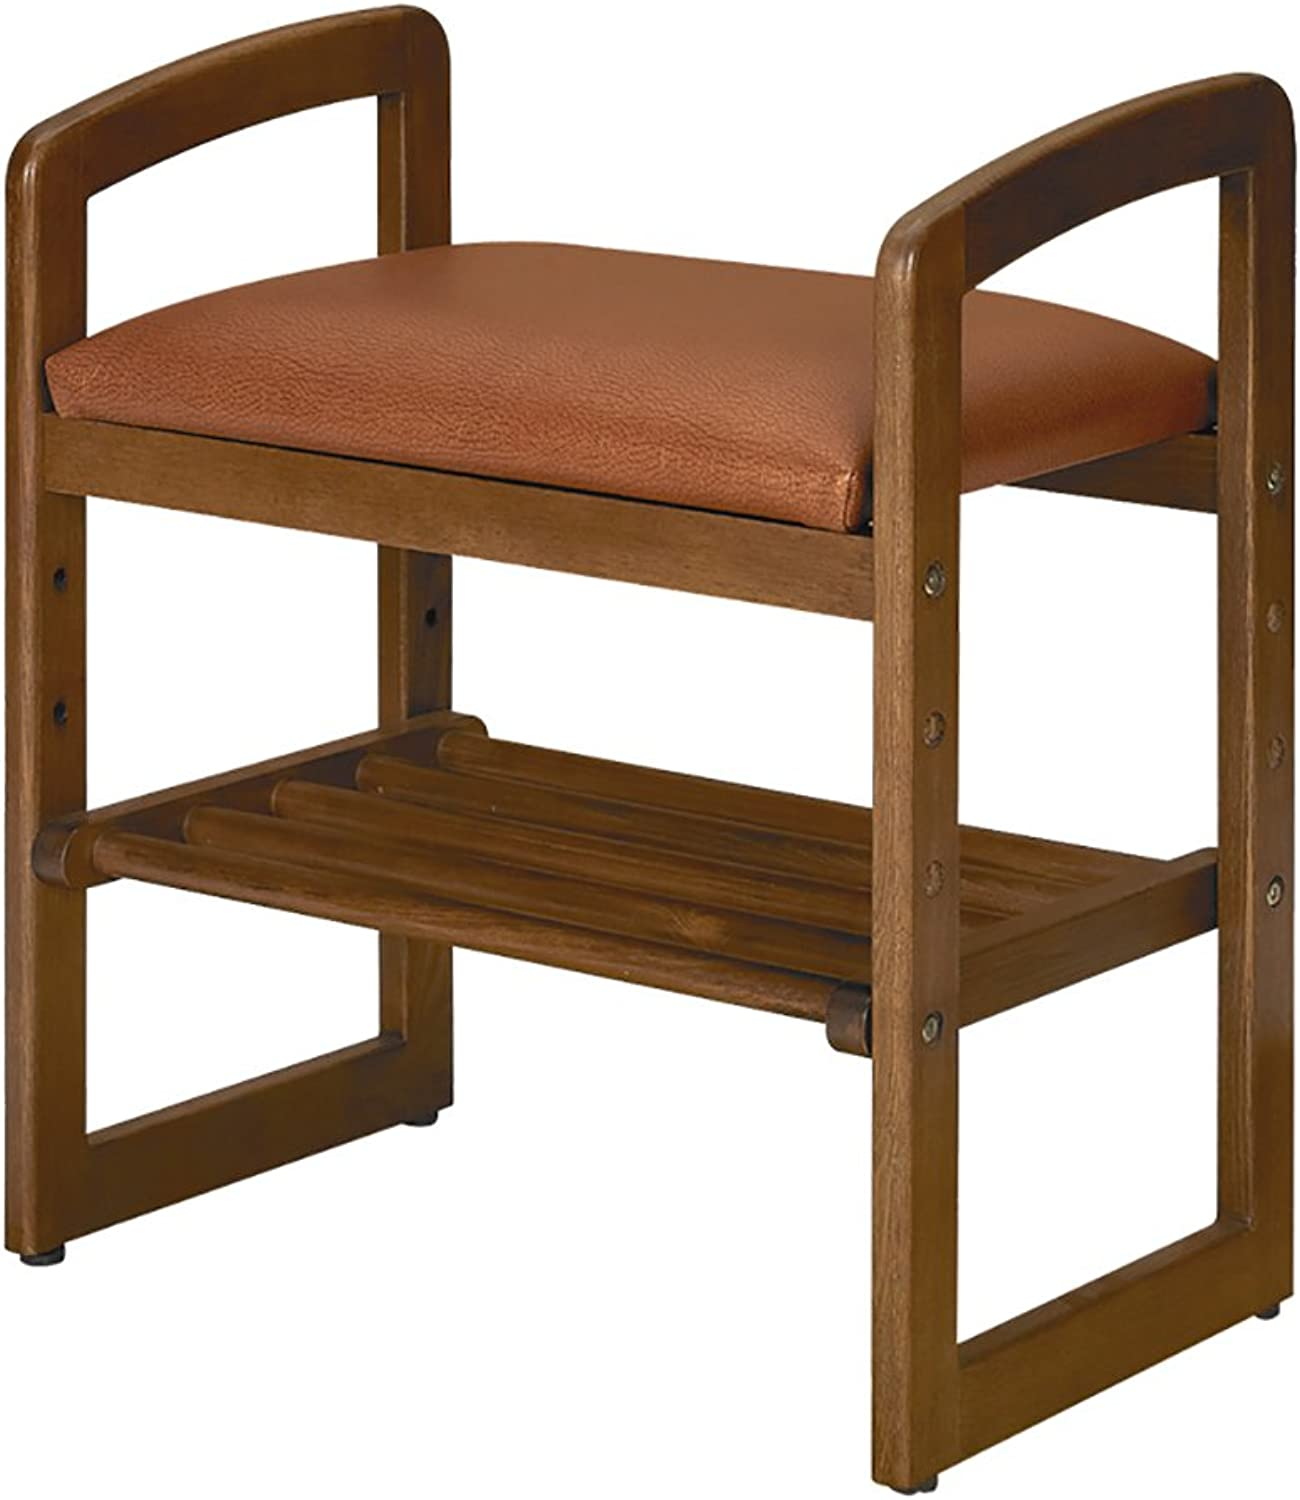 CAOYUSmall stool Solid wood shoes bench, multi-function double shoe rack living room small seat stool simple storage stool storage stool